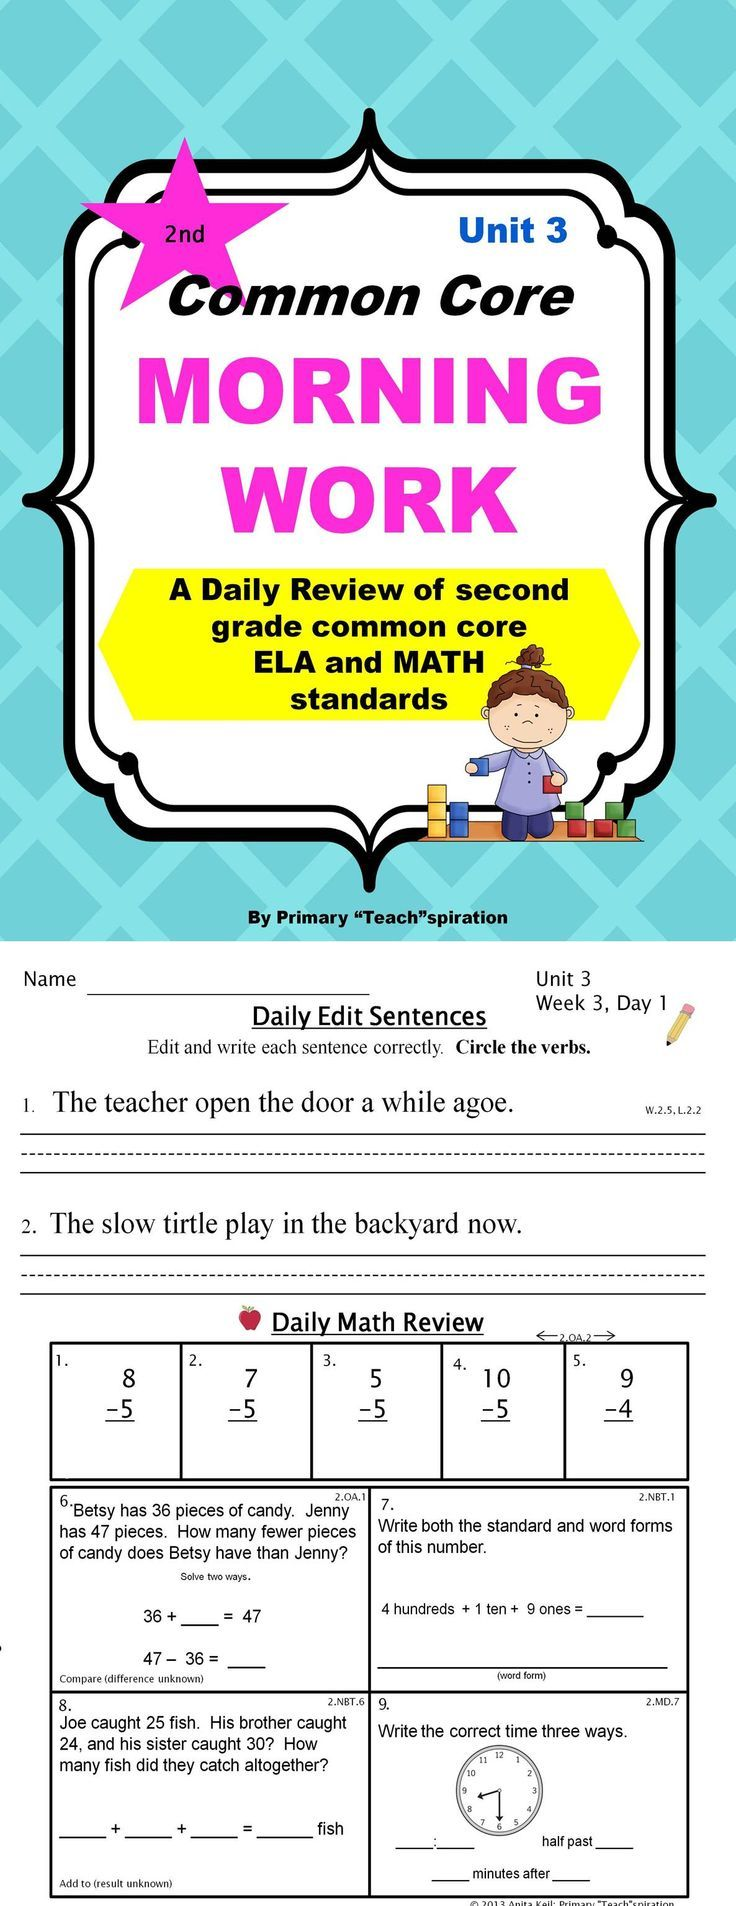 2nd Grade Morning Work   2nd Grade Daily Spiral Review (Unit 3)   Common core morning work. Morning work. Math review